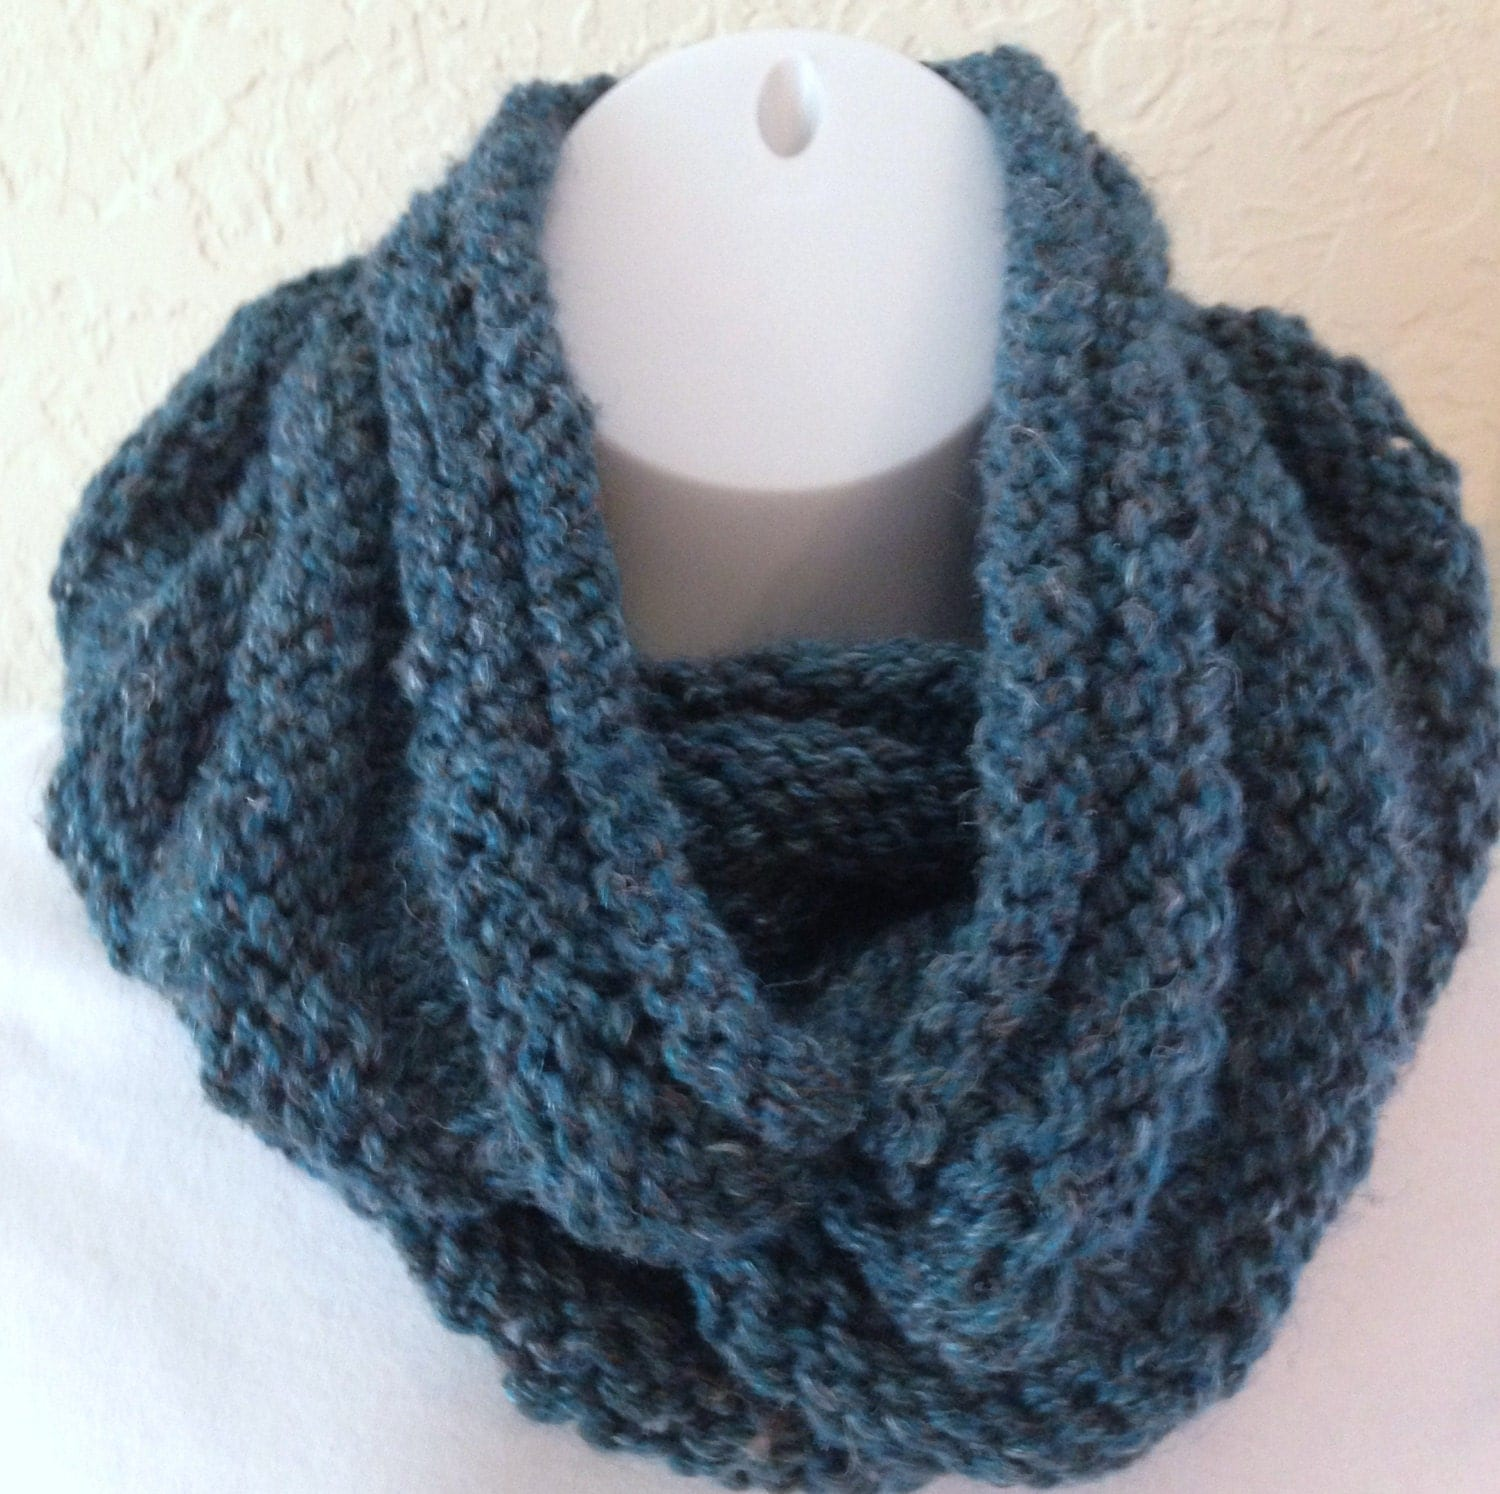 Knit Scarf Pattern With Bulky Yarn : Hand Knit Infinity Scarf Bulky Cowl Teal Tweed Acrylic